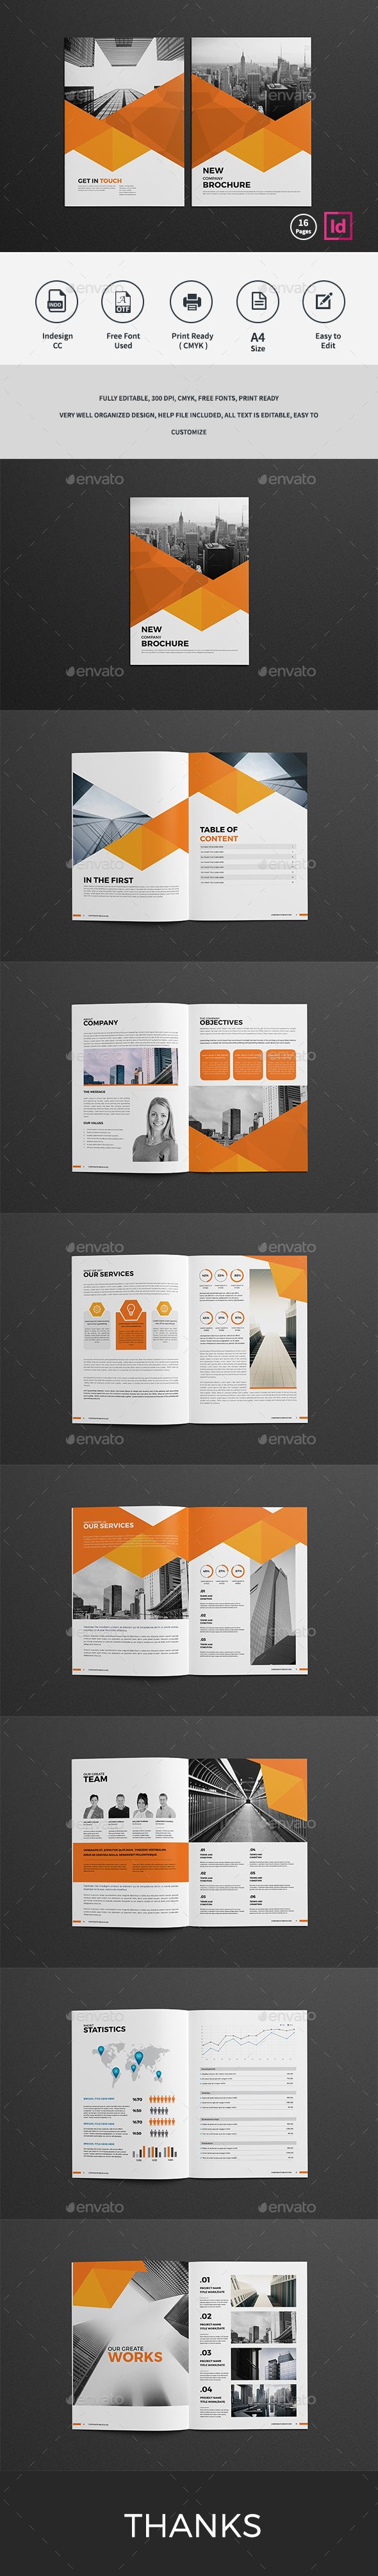 Company Profile Brochure Design Template 2017 - Corporate Brochures Design Template InDesign INDD. Download here: https://graphicriver.net/item/company-profile-brochure-2017/19359786?ref=yinkira